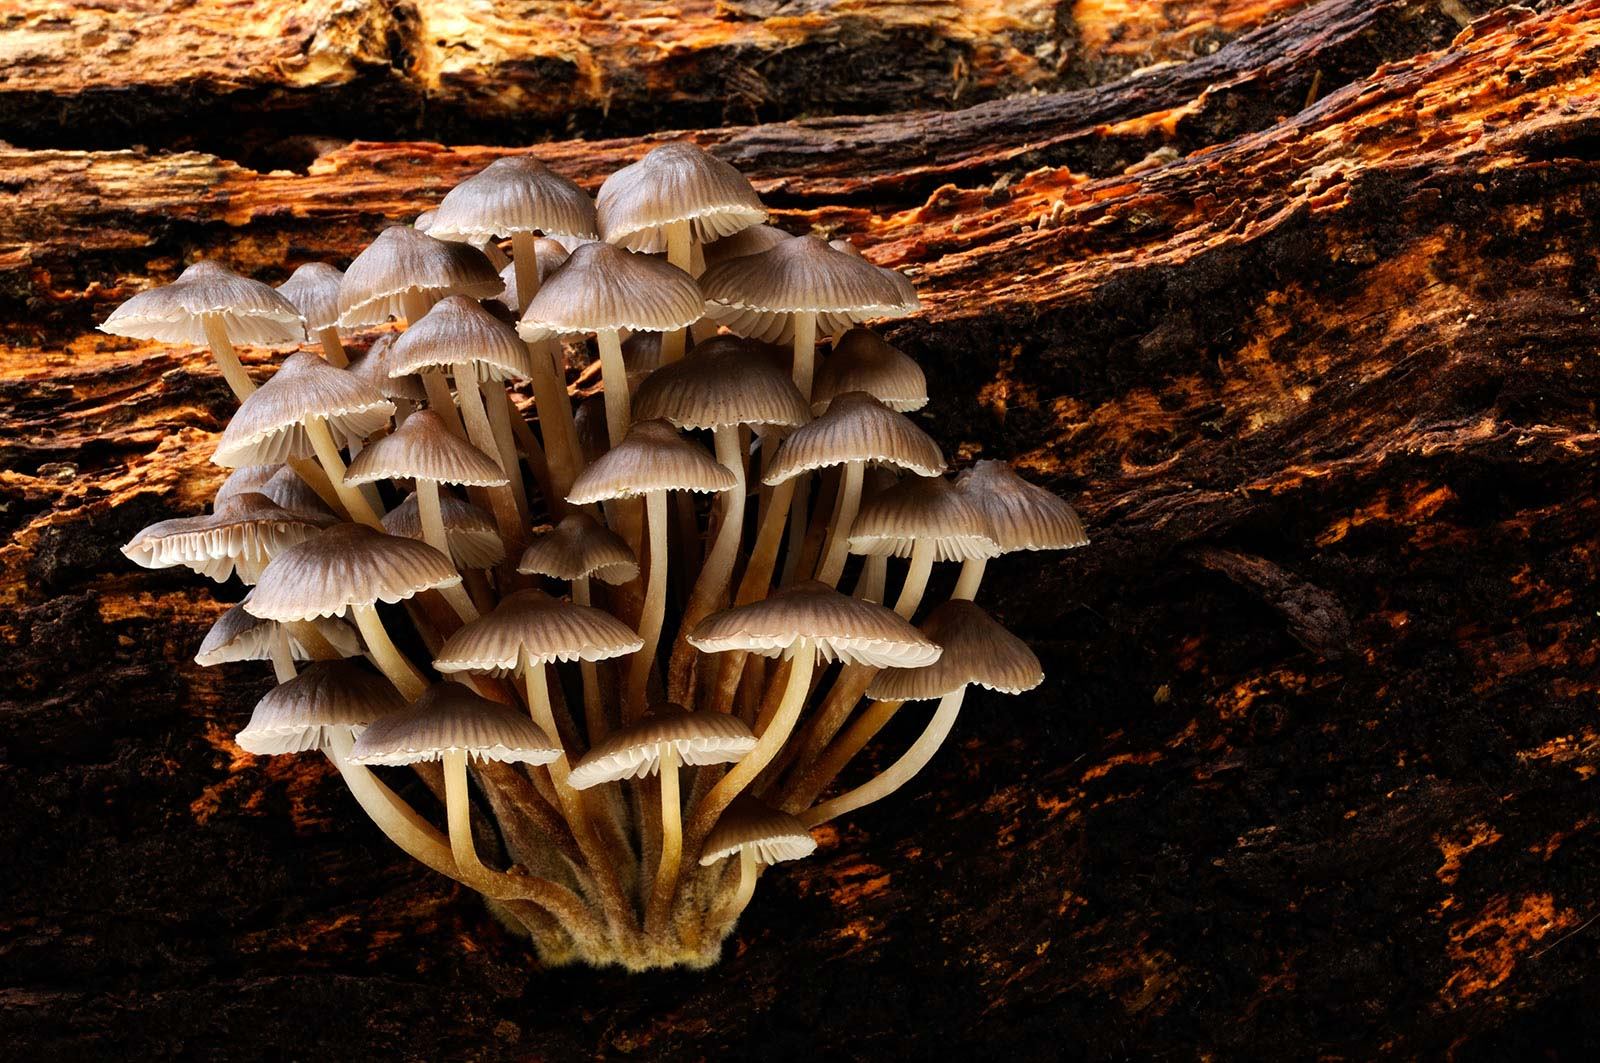 tips for photographing fungi